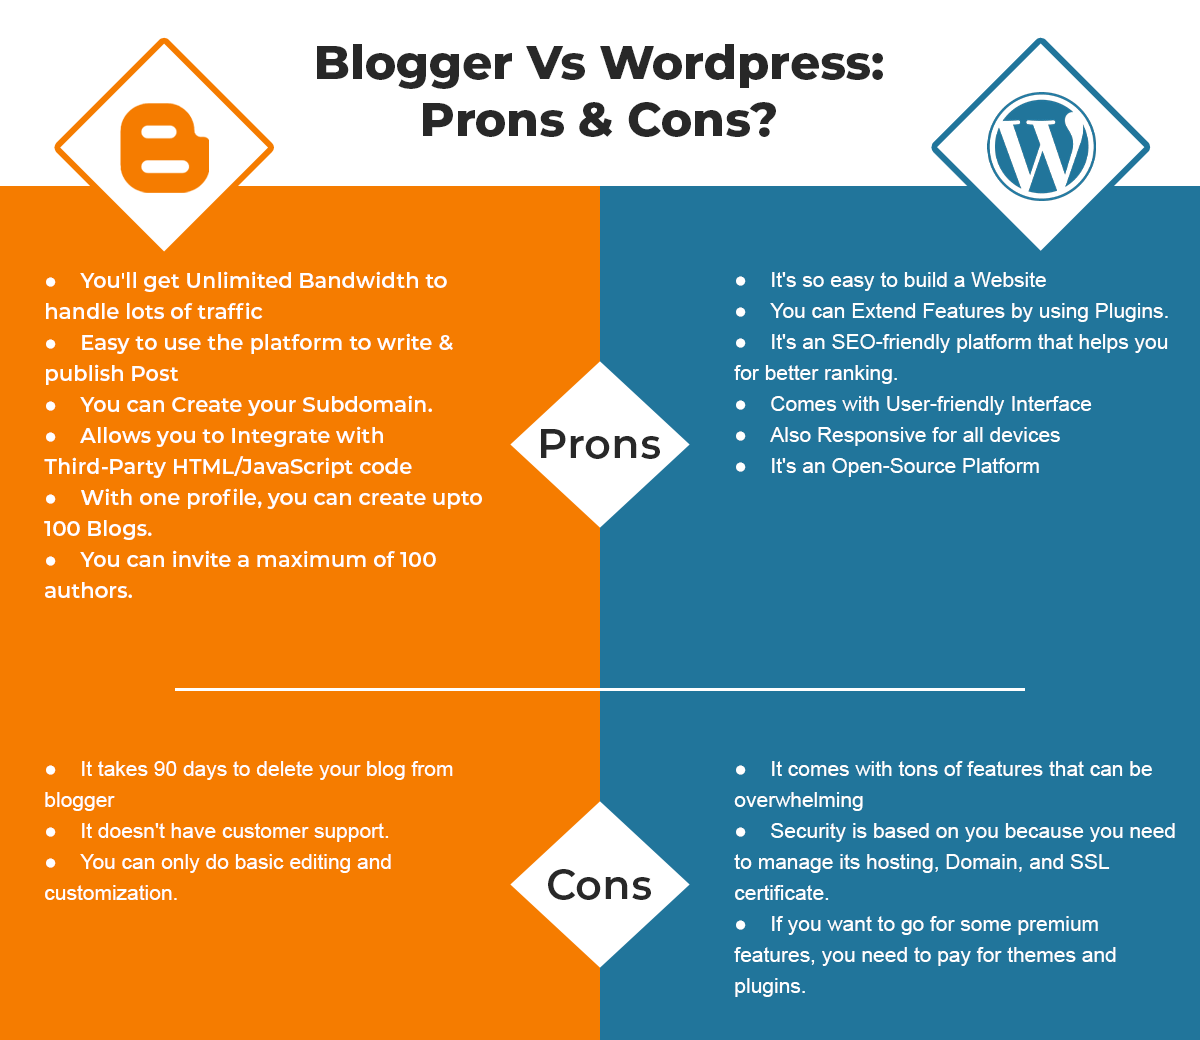 Blogger Vs WordPress: Key Differences With Pros And Cons